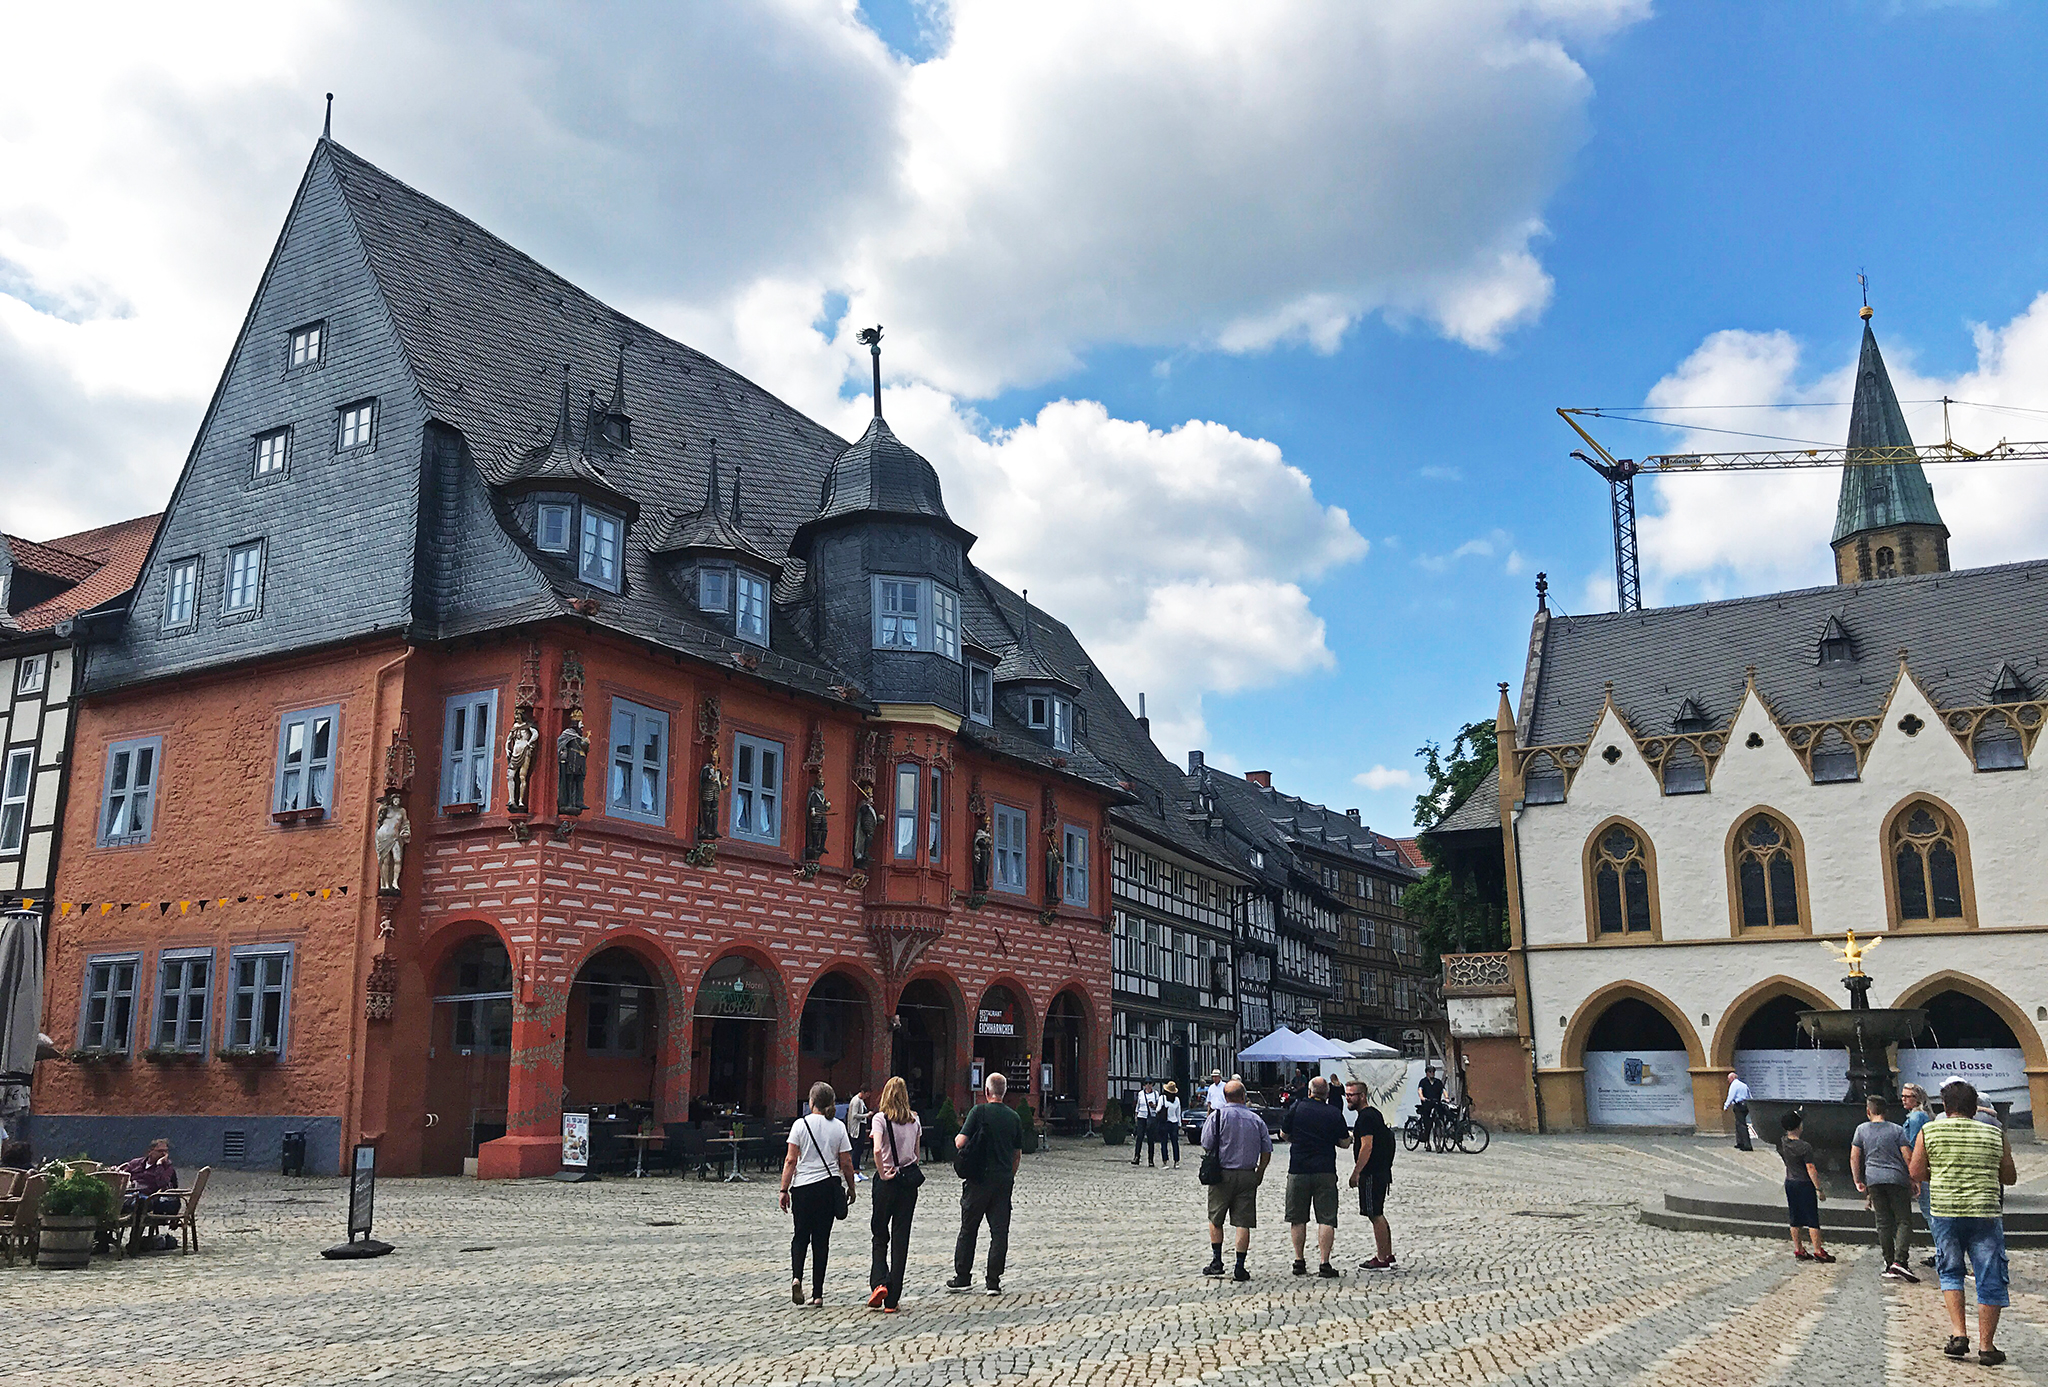 Parts of the central market square in Goslar